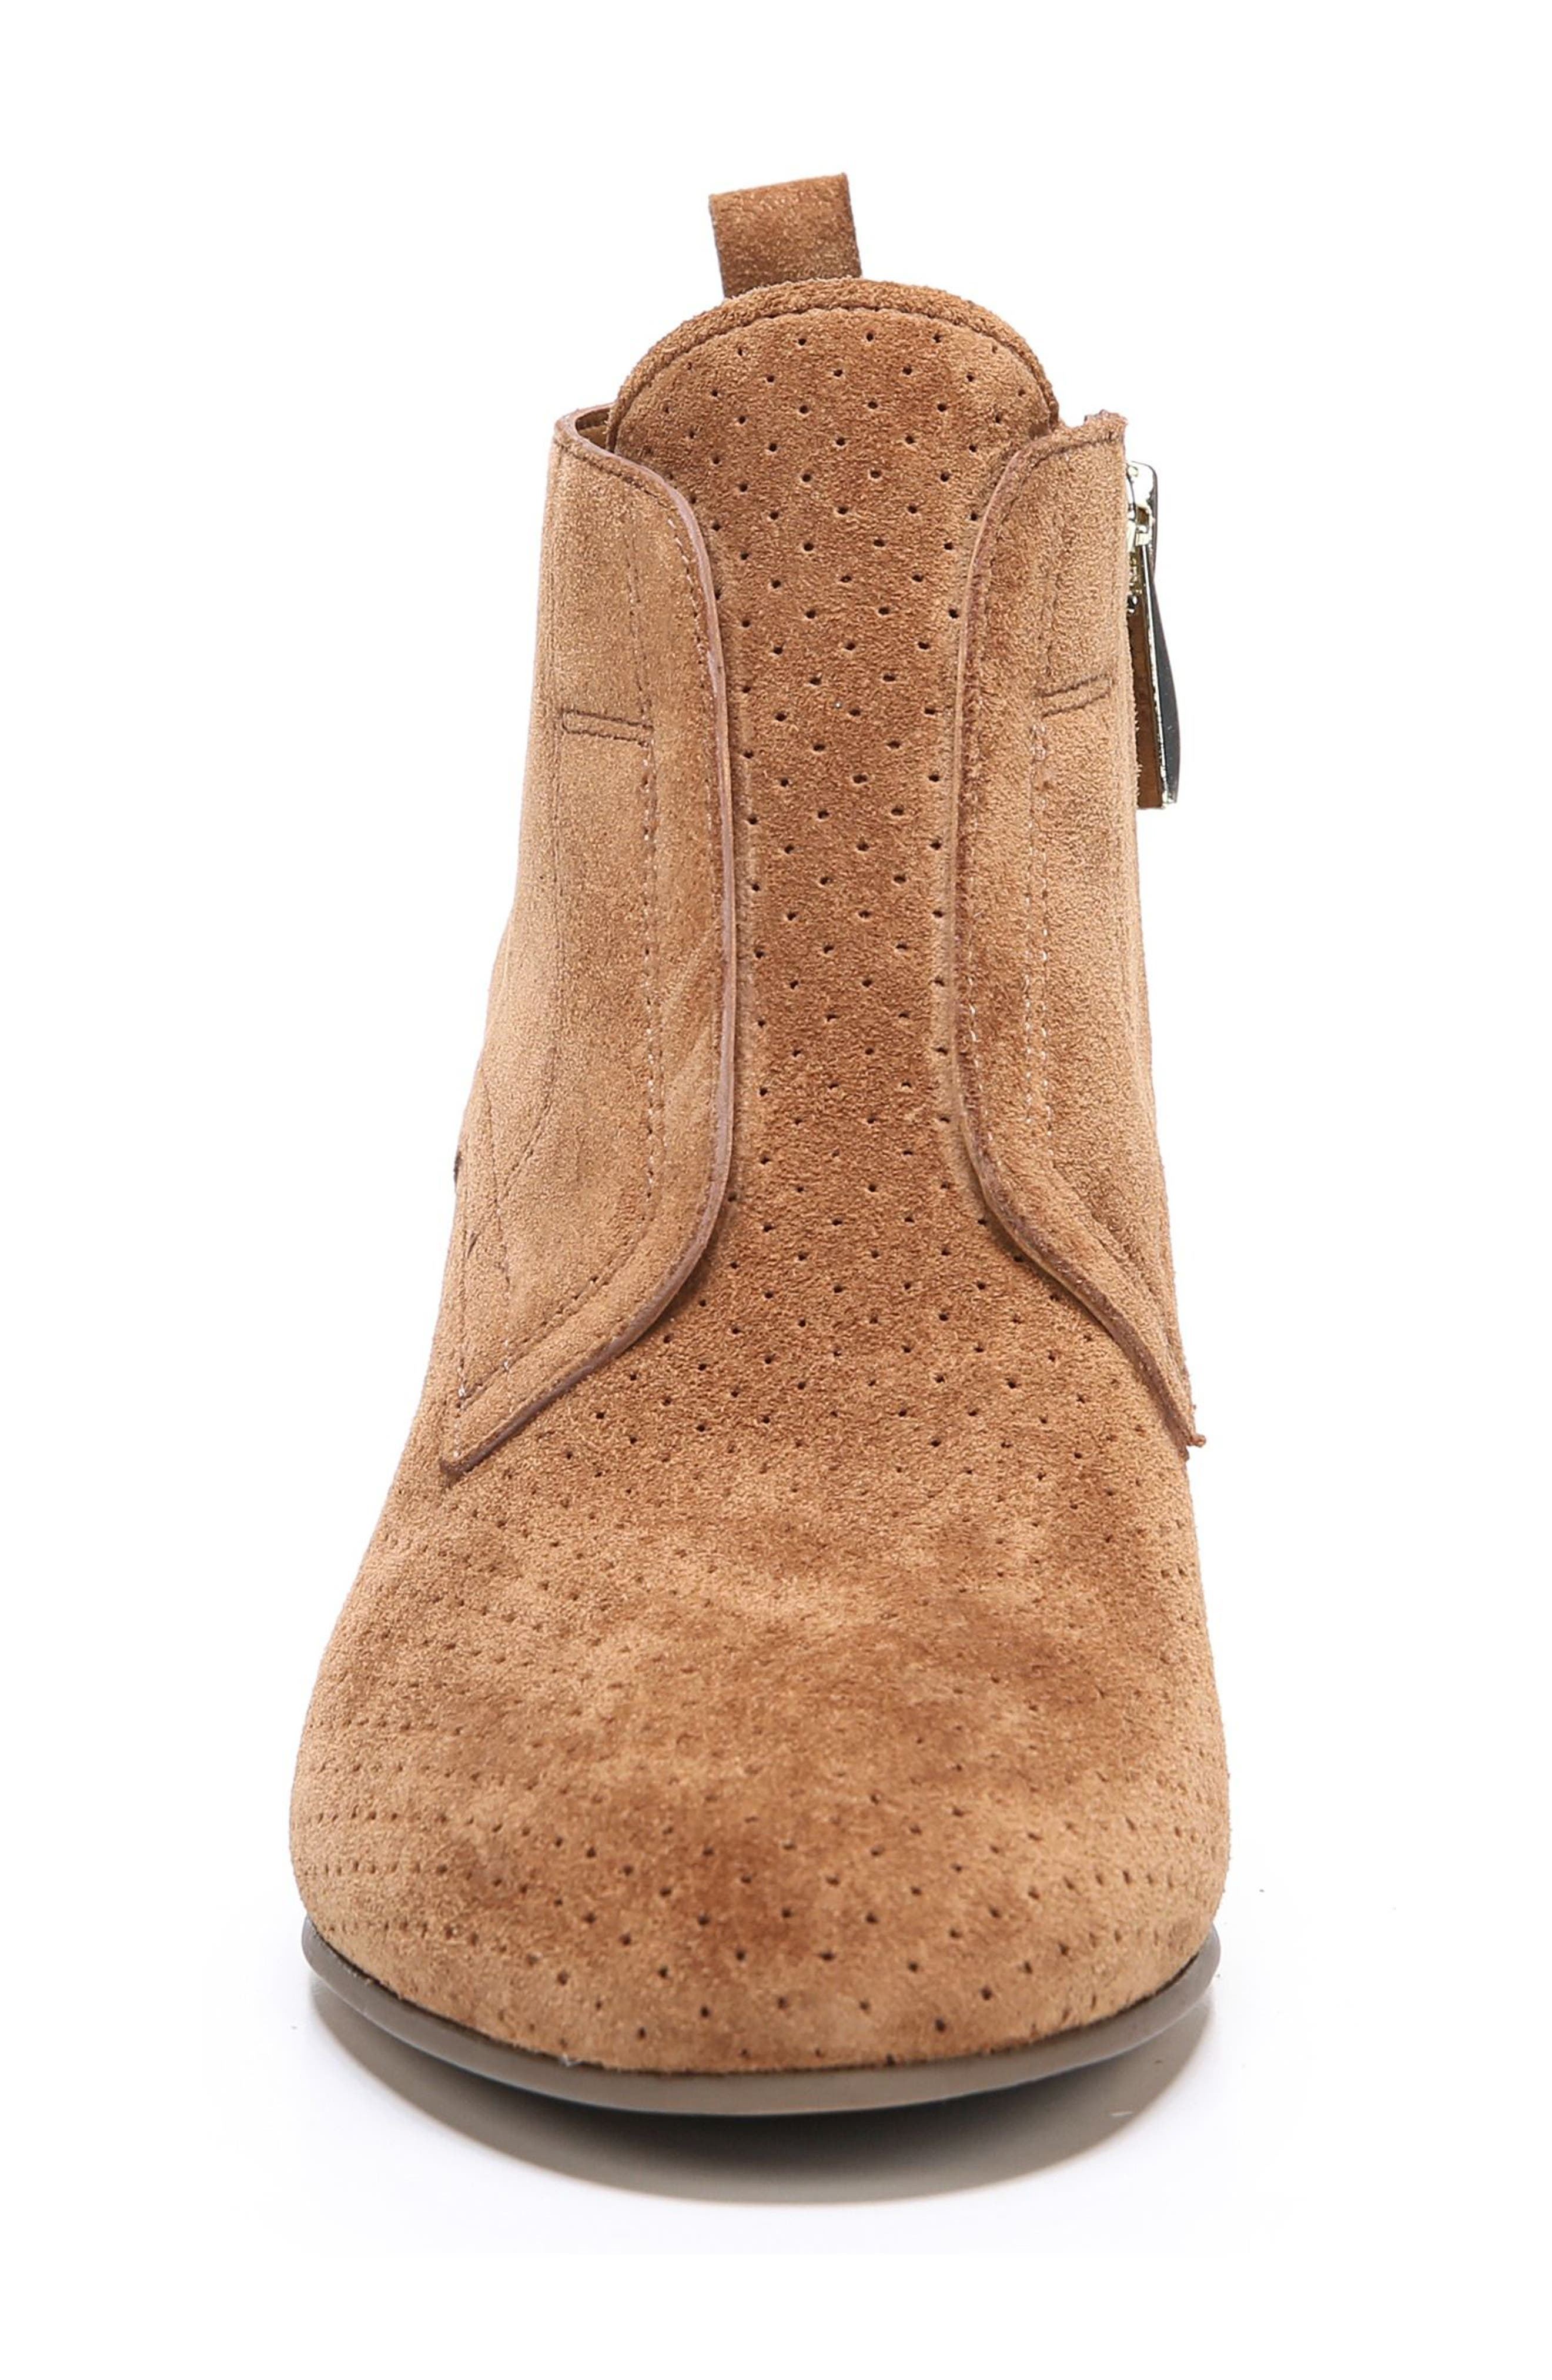 Alfie Bootie,                             Alternate thumbnail 4, color,                             Whiskey Suede